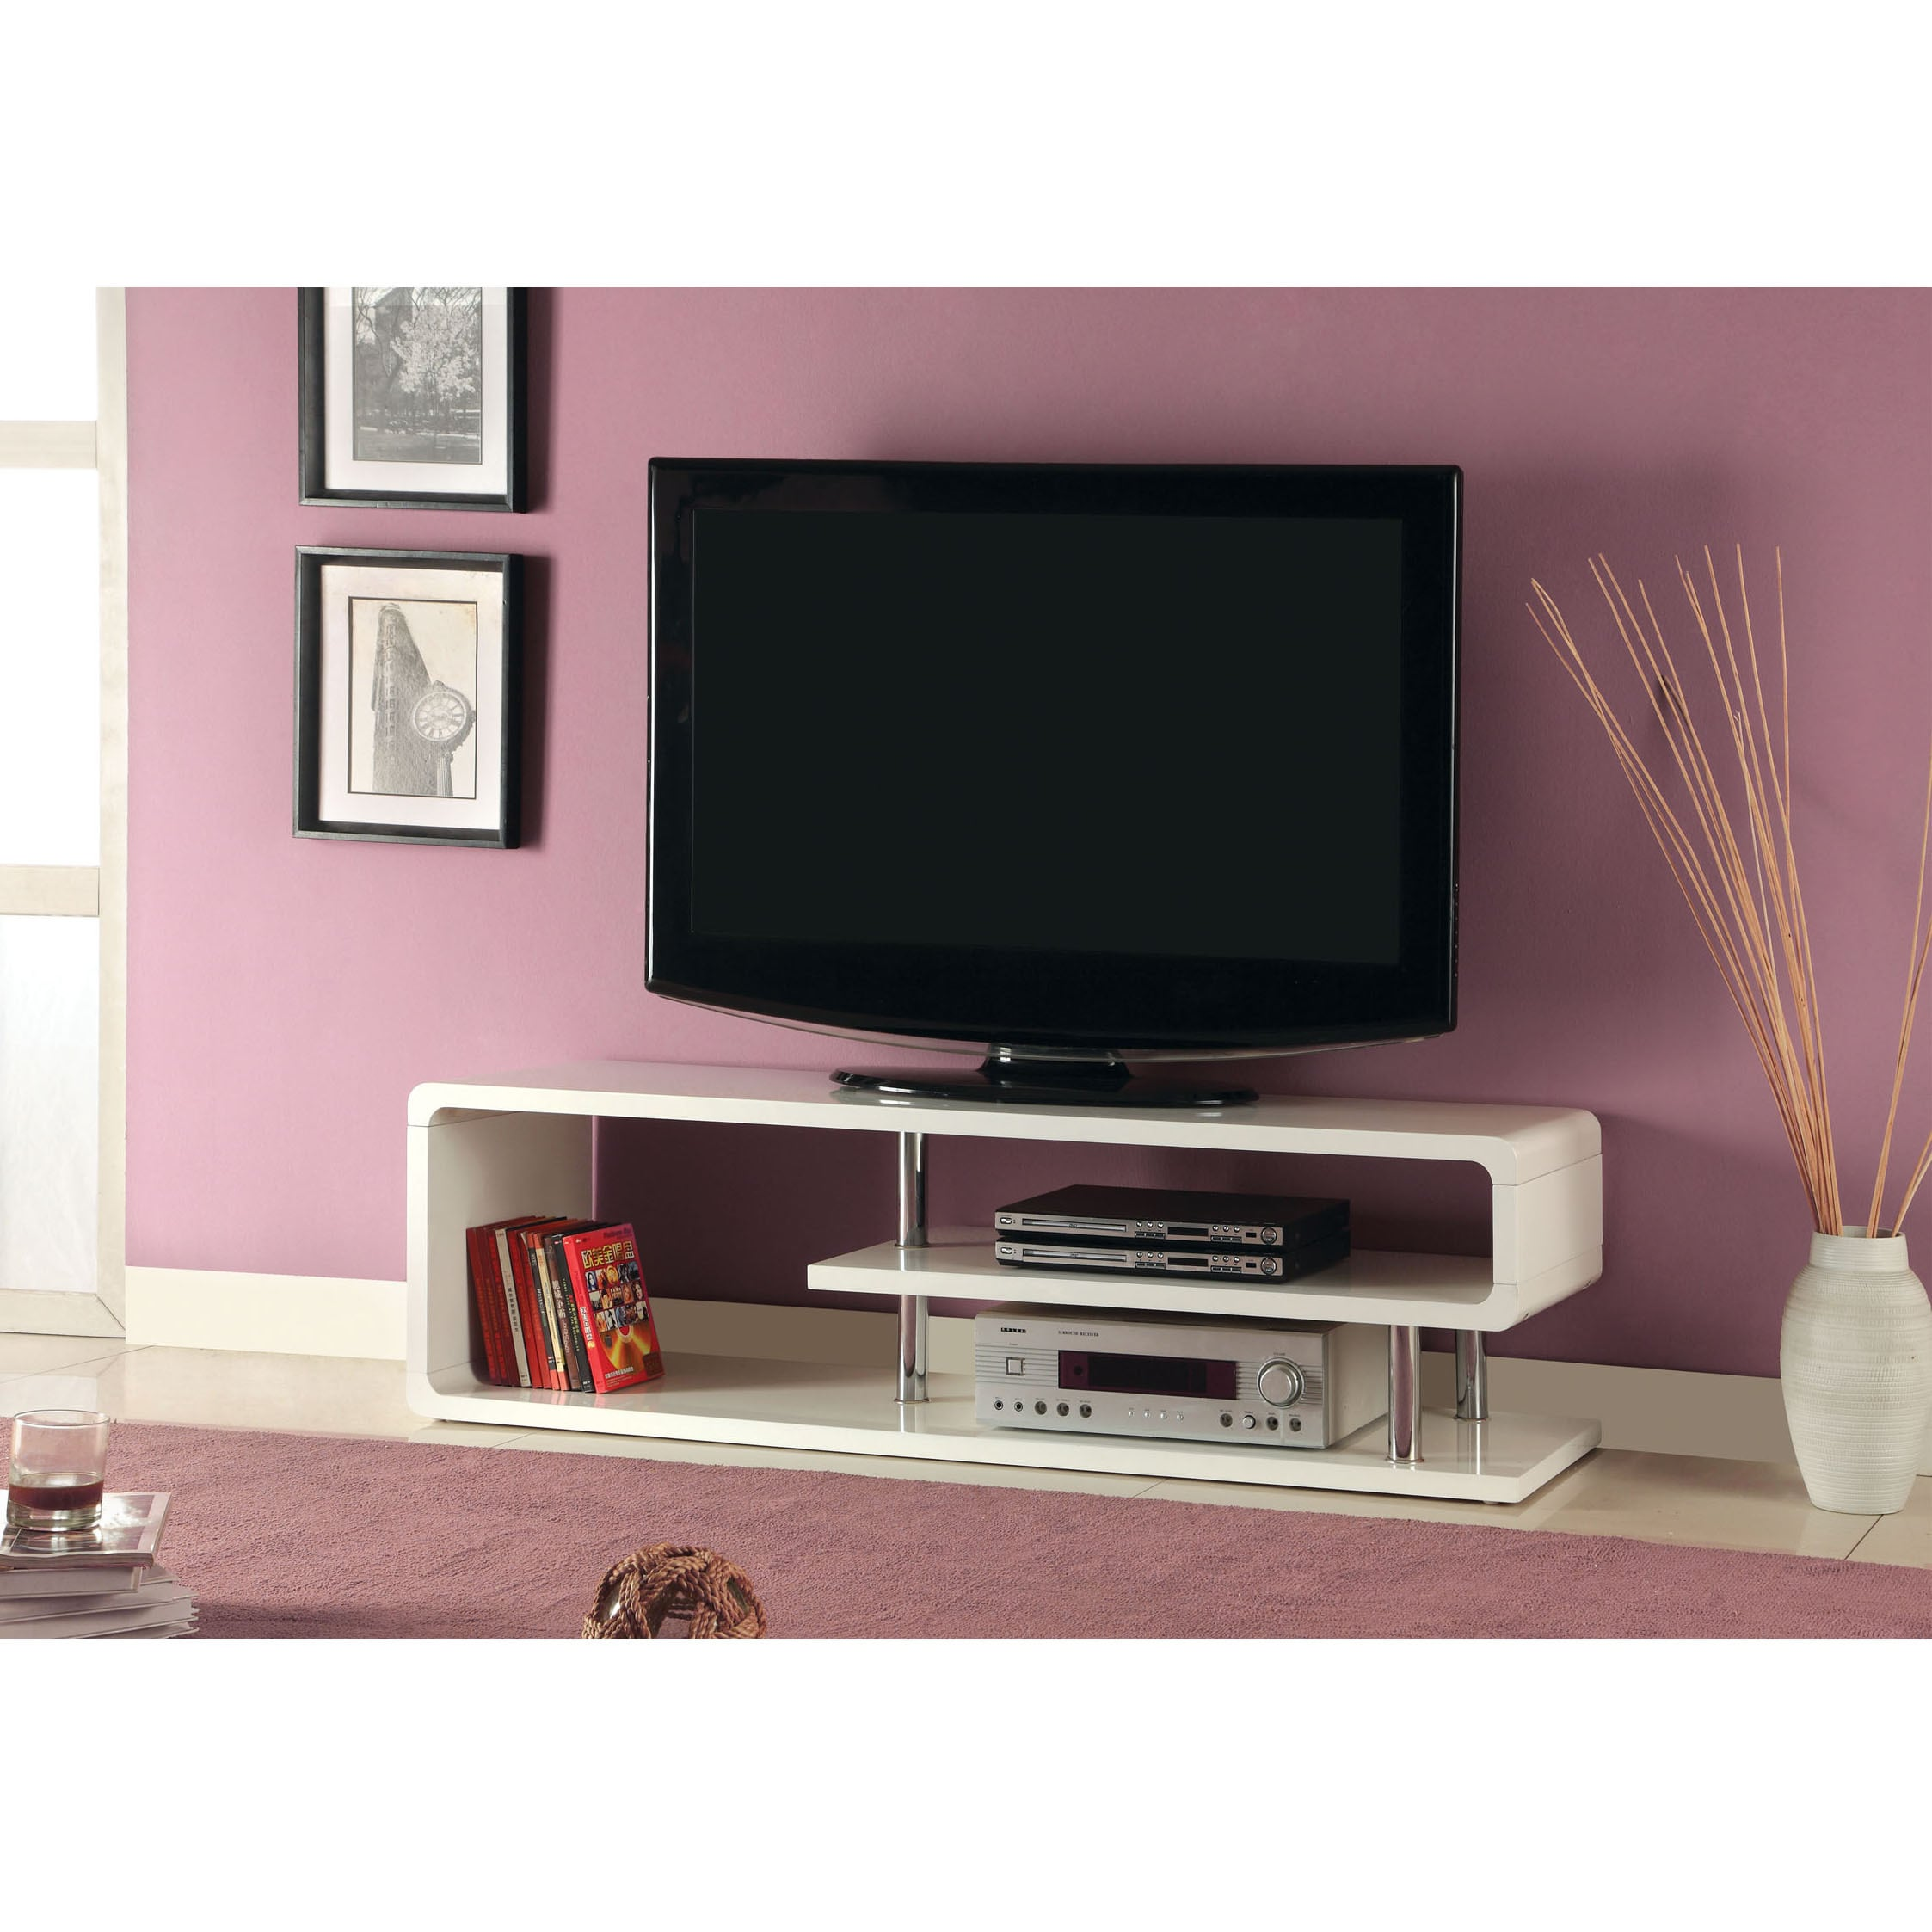 Furniture of America Diantha Glossy Off White TV